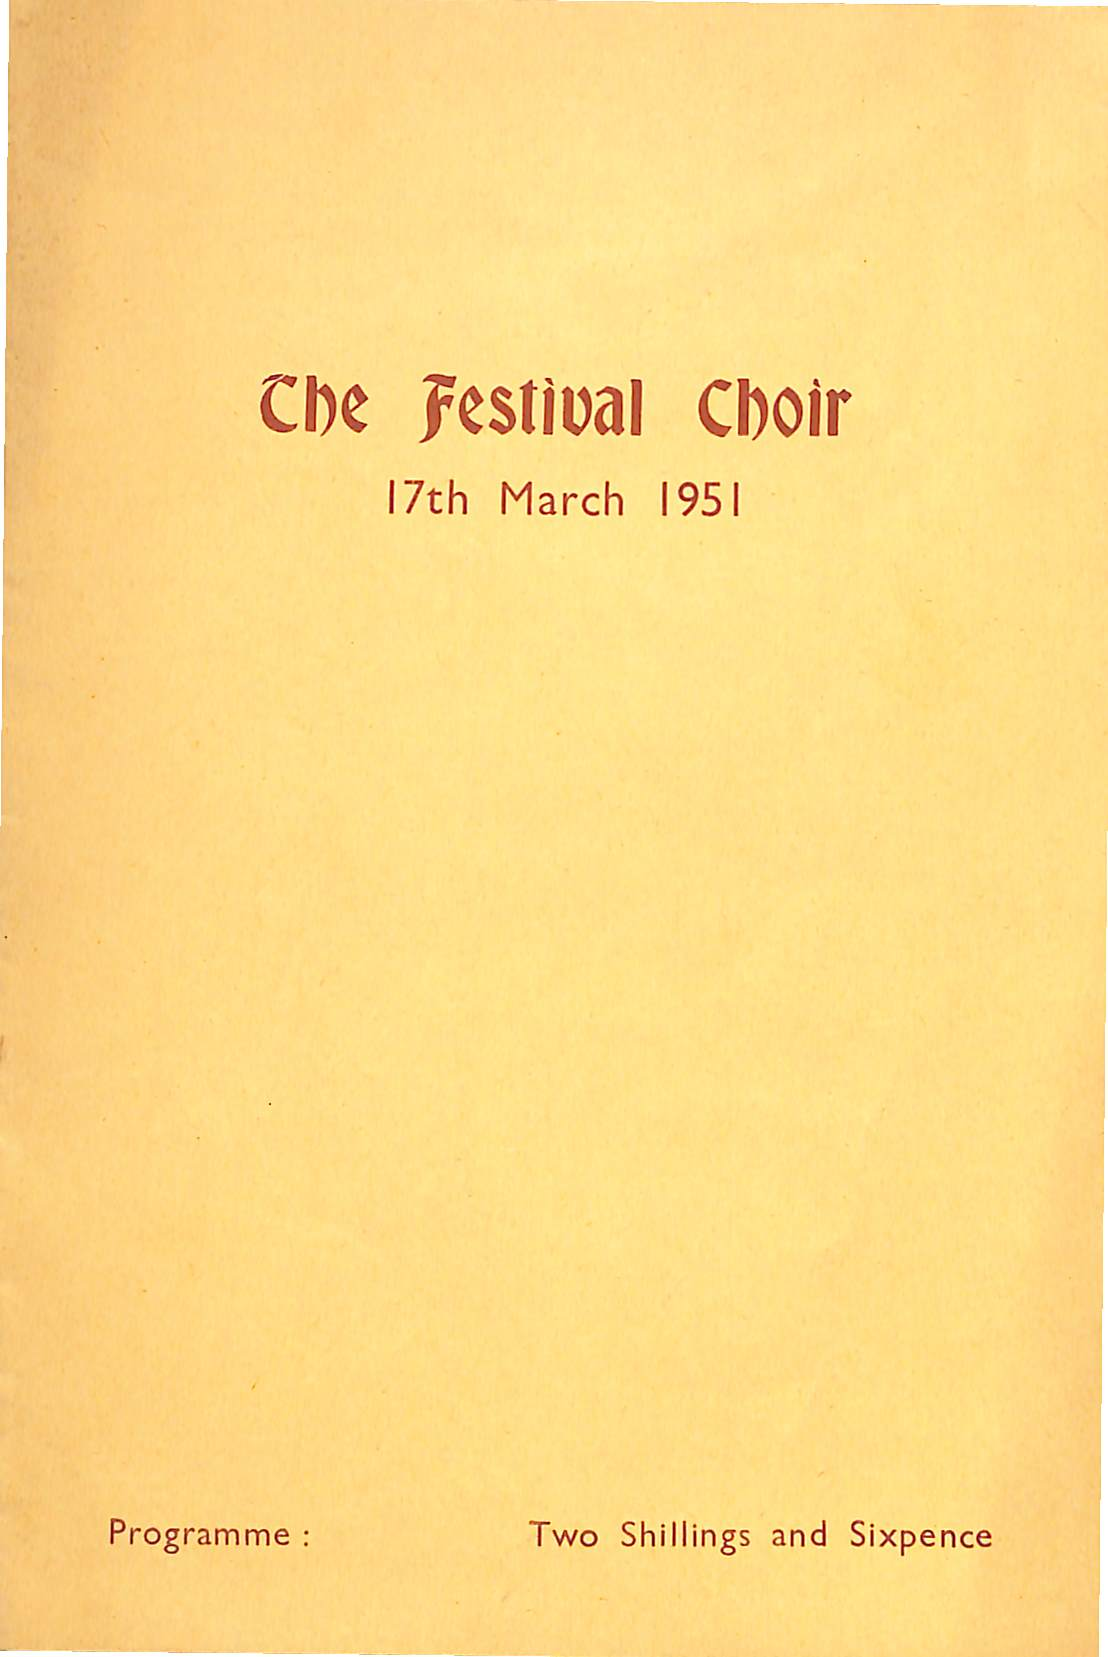 17 March 1951